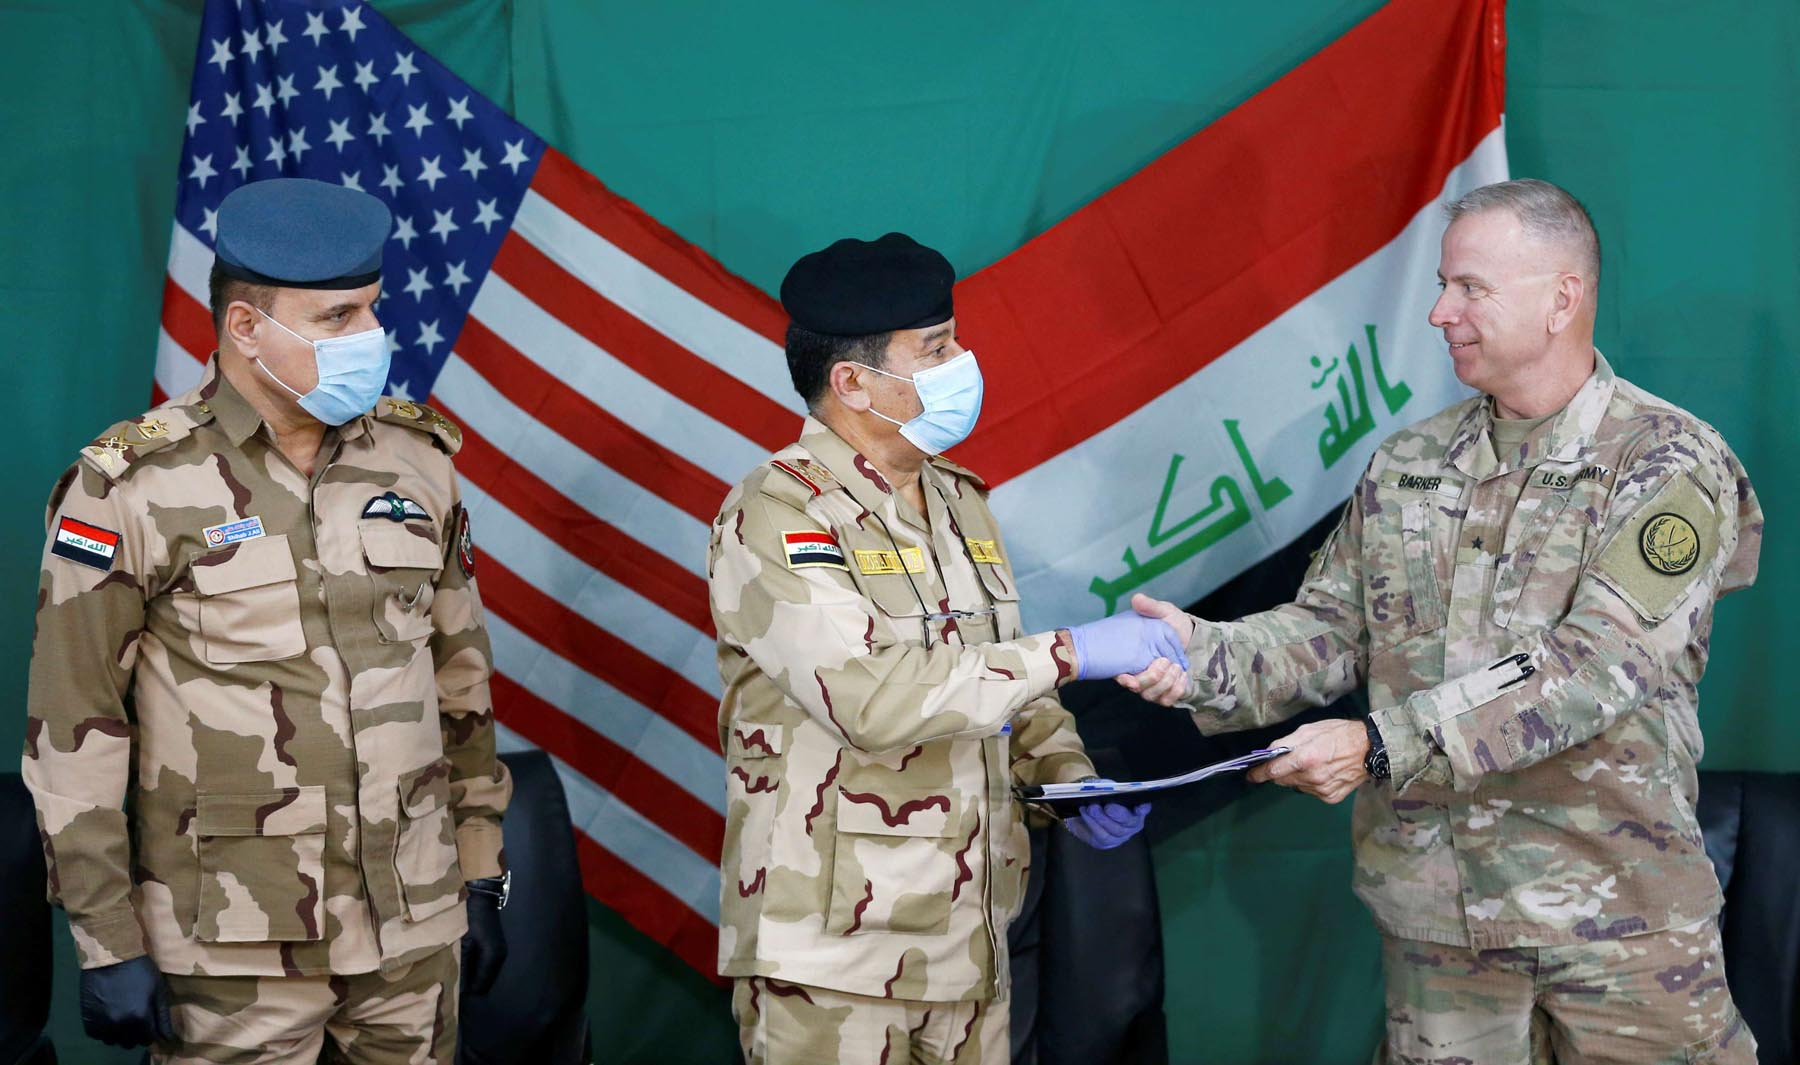 US Brigadier General Vincent Barker shakes hands with Iraqi General Mohammed Fadel, as he wears face mask and gloves, following the outbreak of coronvavirus disease, during the handover of Qayyarah Airfield West from US-led coalition forces to Iraqi Security Forces, in Mosul, Iraq, March 26. (Reuters)